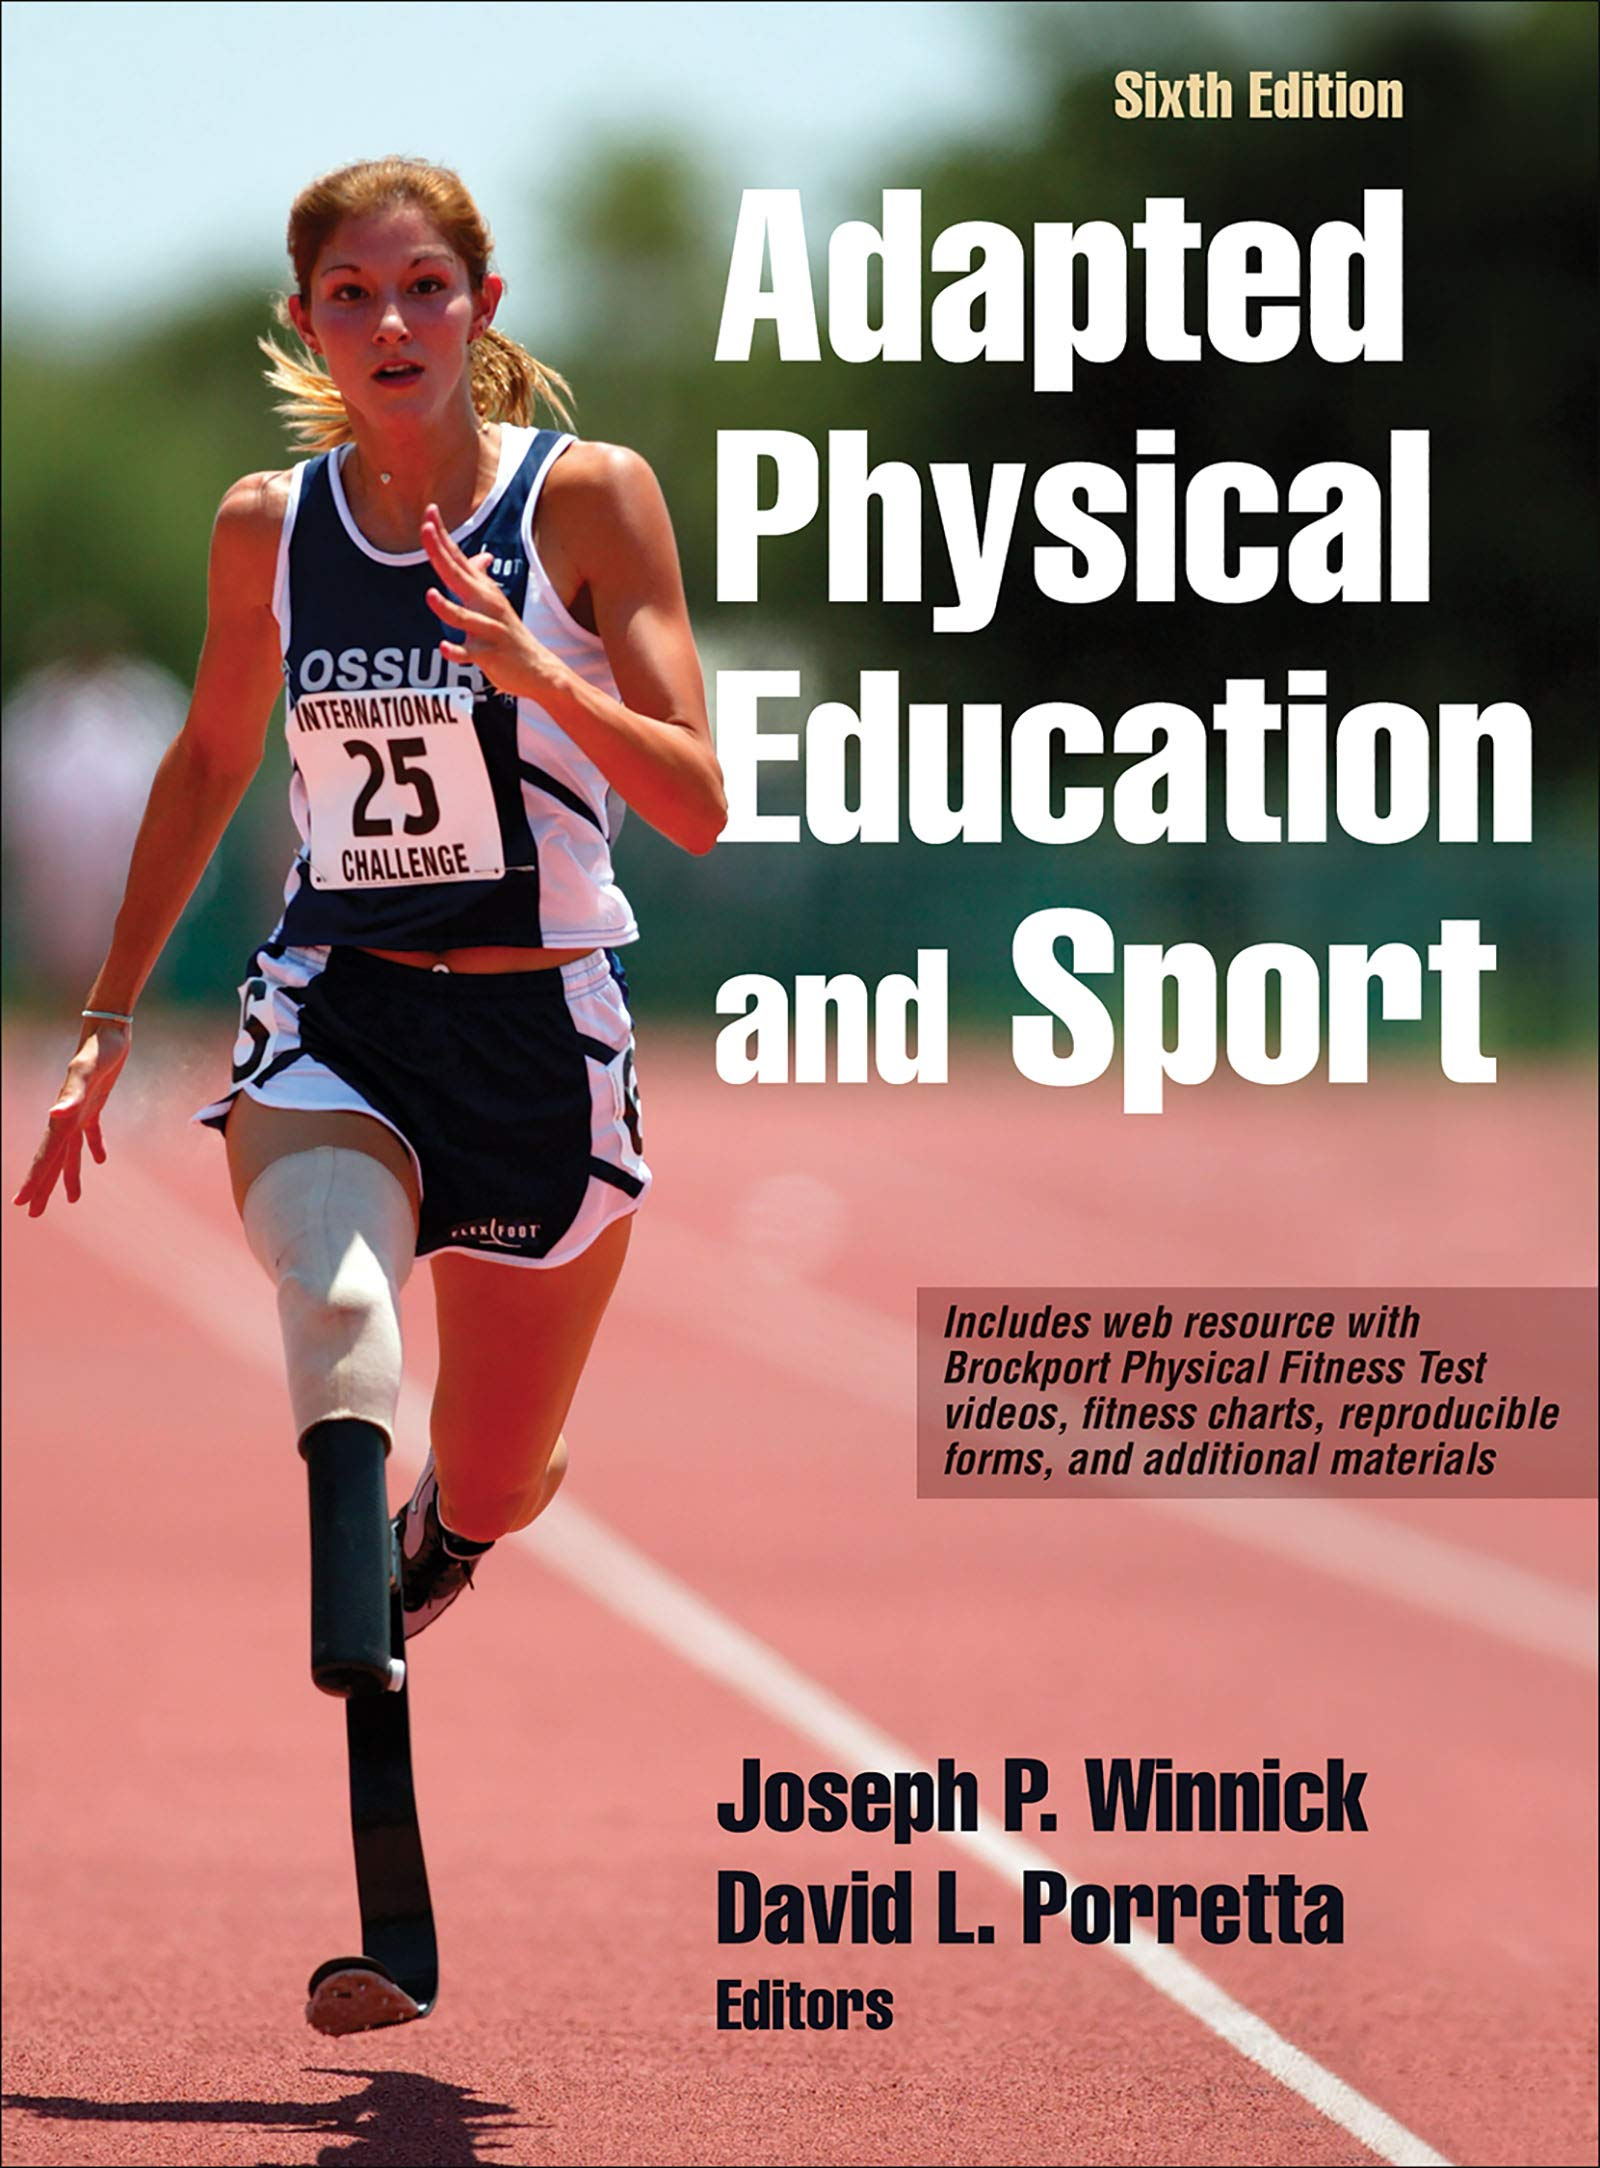 adapted physical education and sport 5th edition free